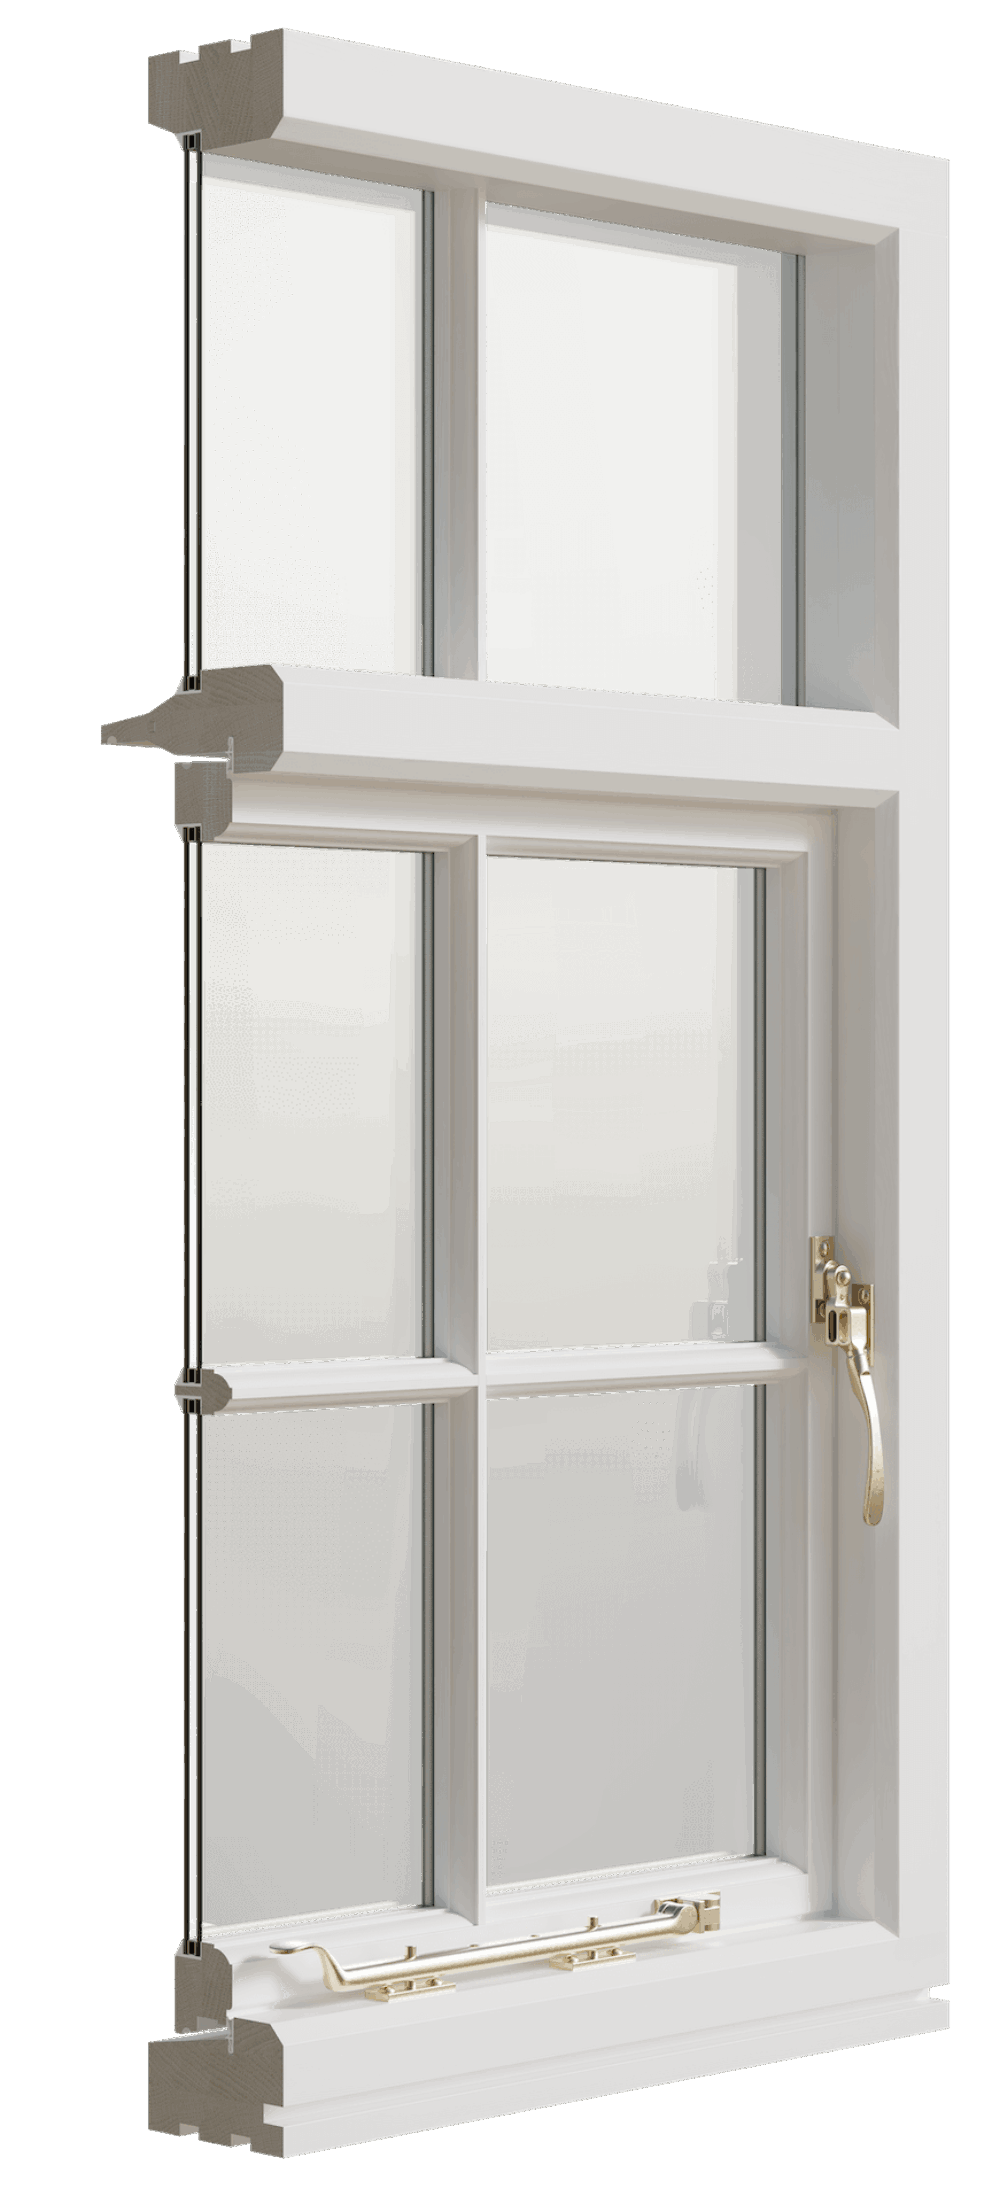 Sash-windows-HERITAGE-casement-windows-Zyle-Fentser-1